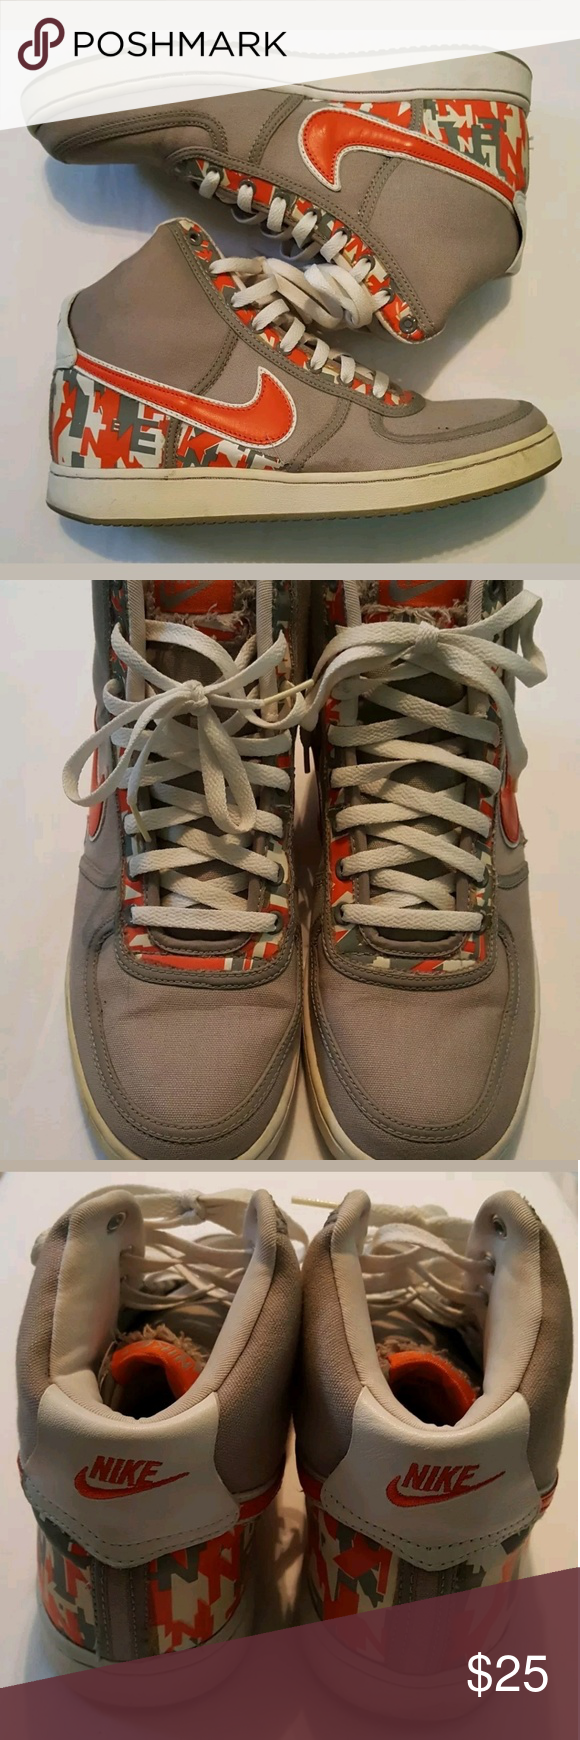 Mens NIKE Sneakers Nike Basketball Shoes Orange Gray Mens 11 Canvas Leather  310067 081 00 Swoosh Nike Shoes Sneakers 3b4a52301